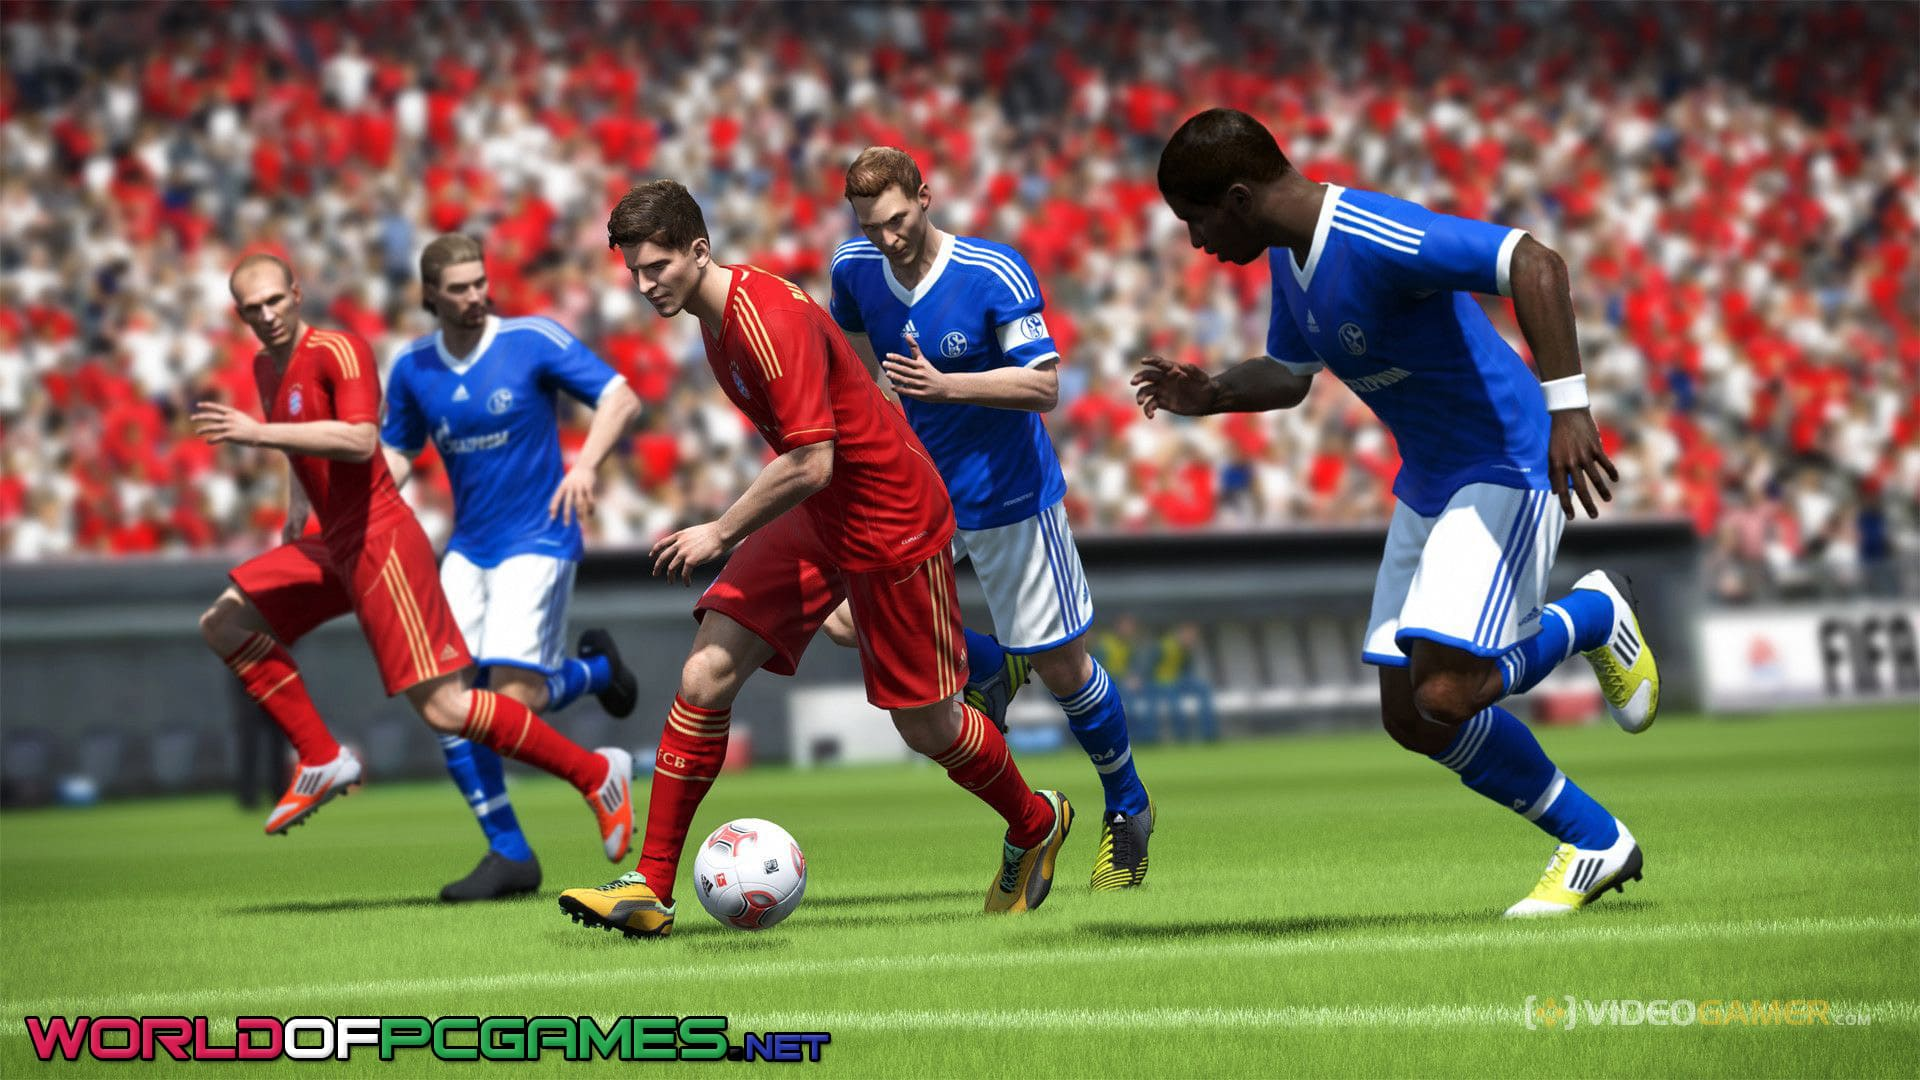 FIFA 13 Free Download By Worldofpcgames.net